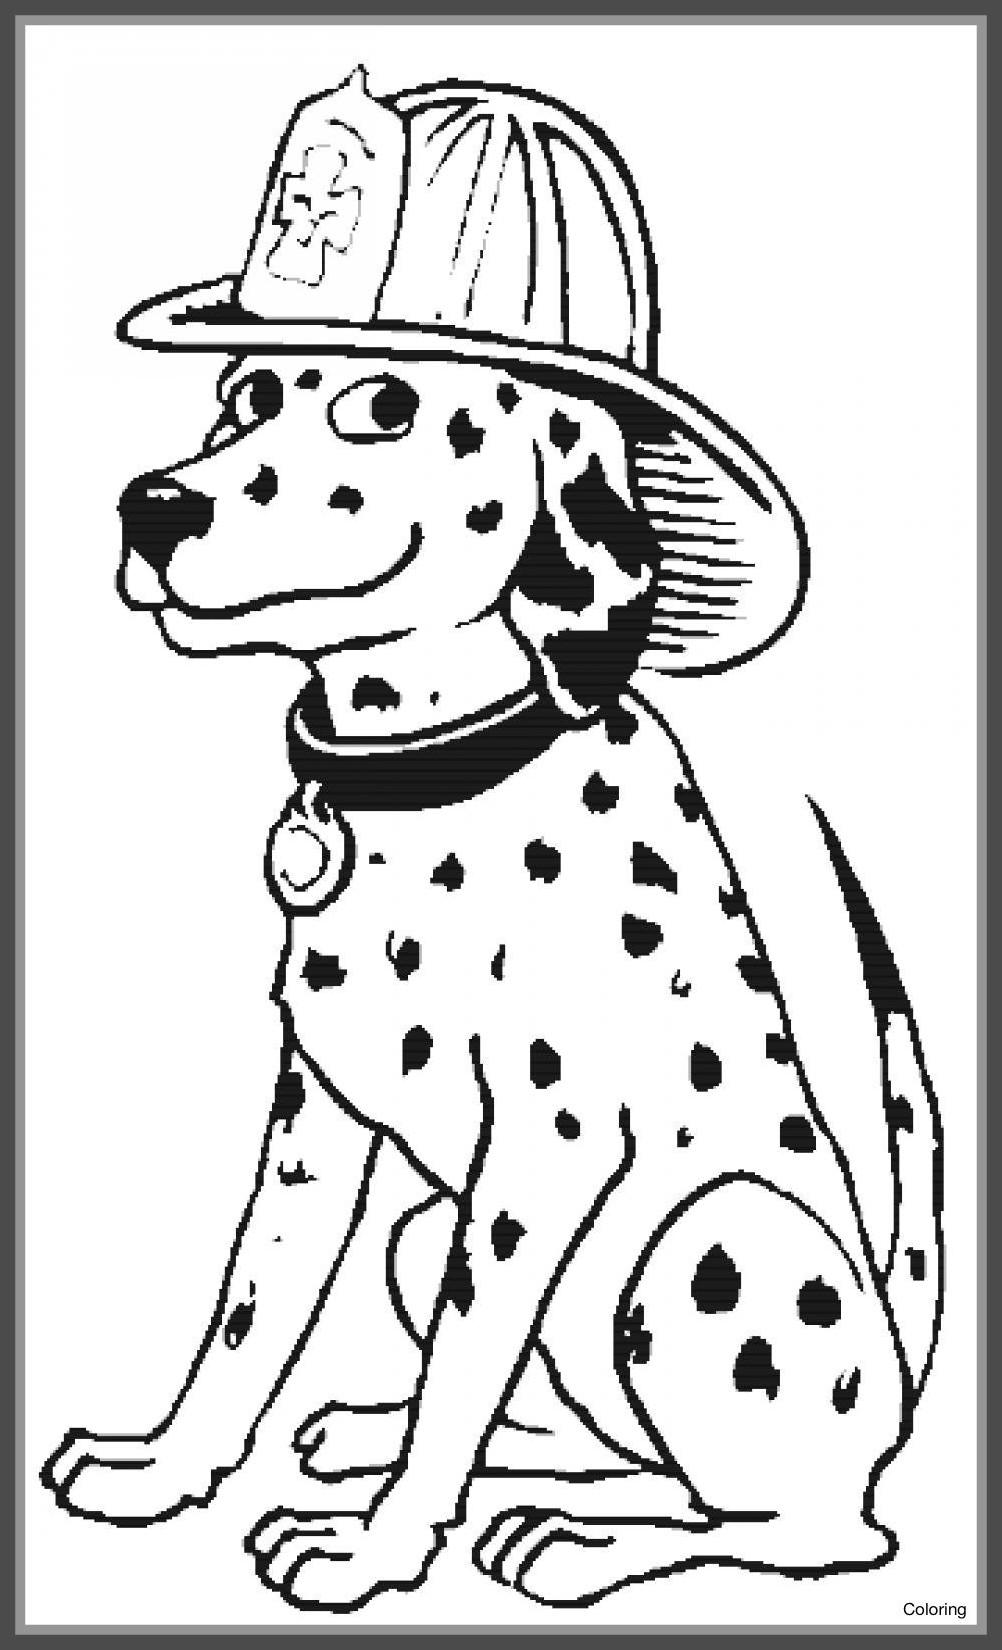 Free Sparky The Fire Dog Coloring Pages Fattkay Characters printable